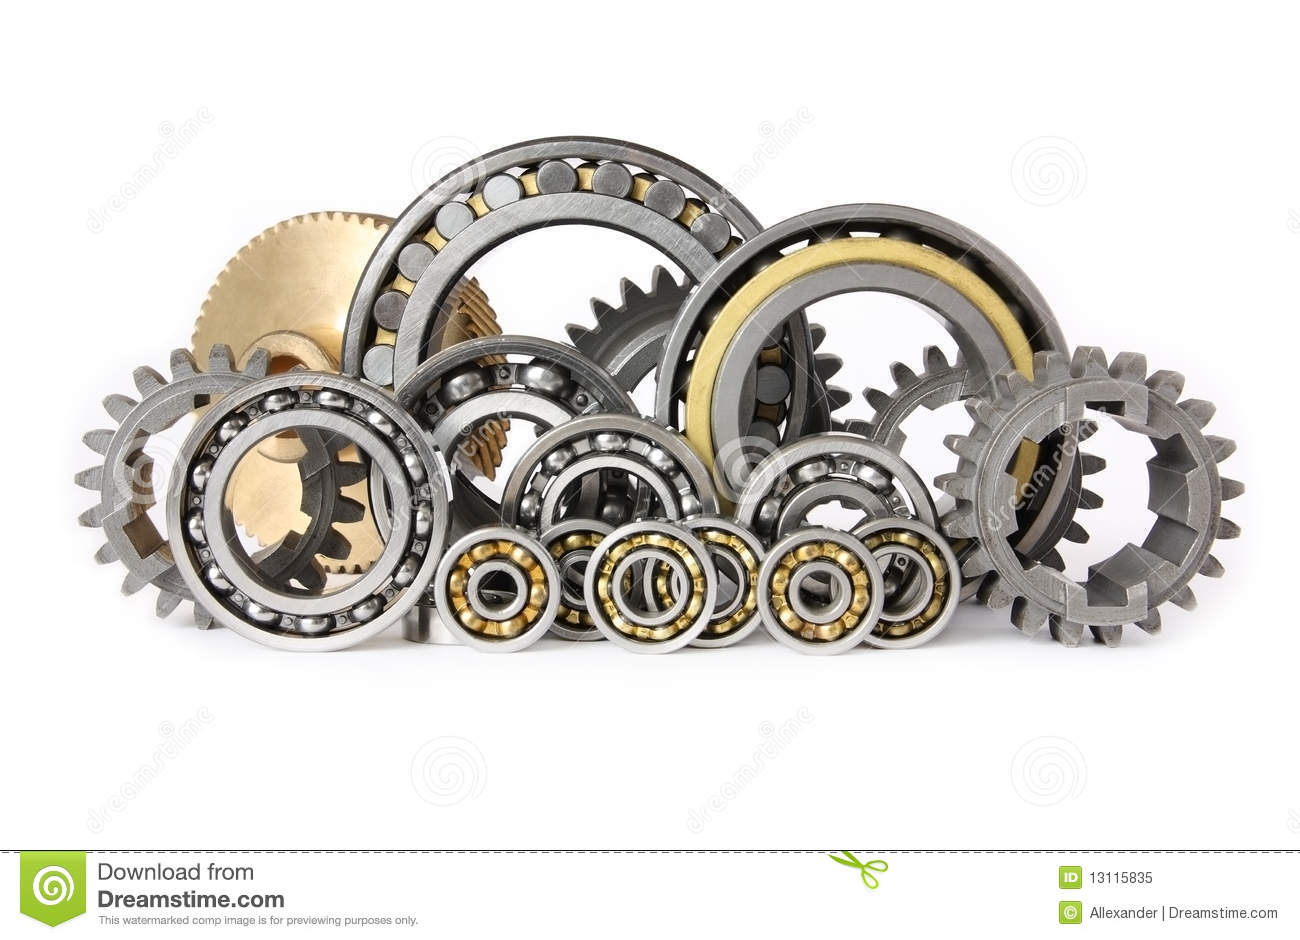 The gears and bearings